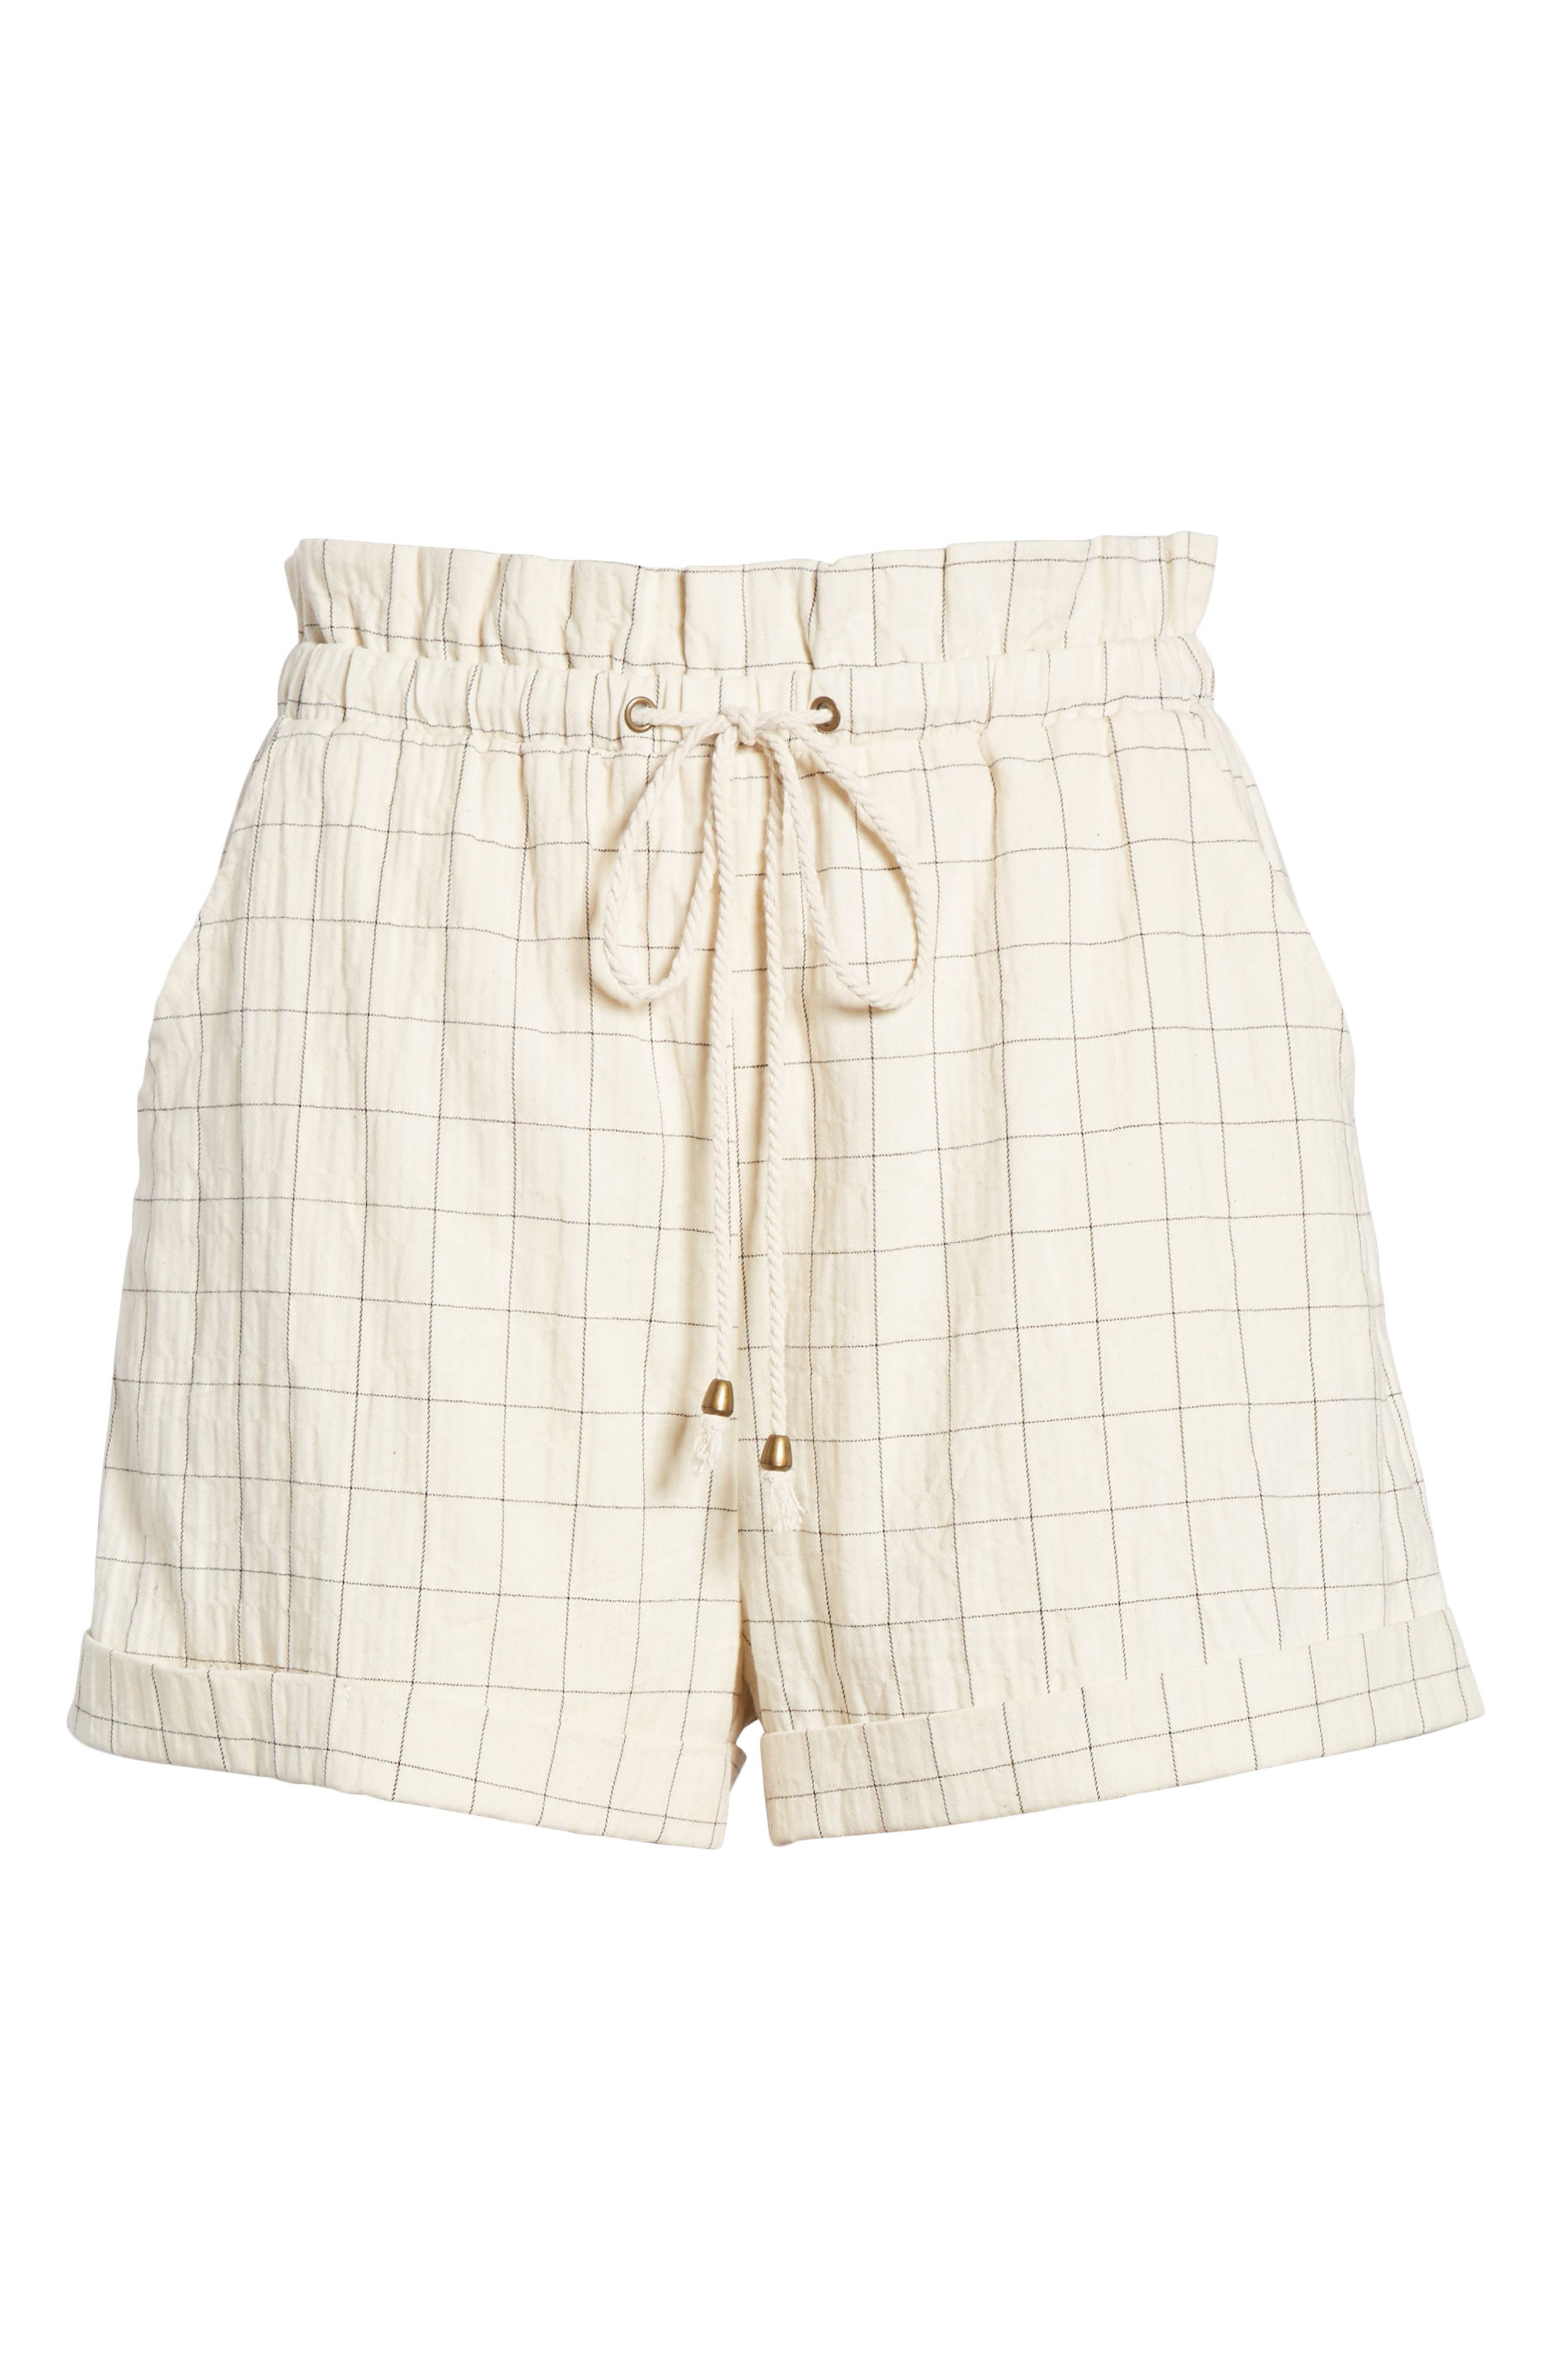 Drawstring Woven Shorts,                             Alternate thumbnail 6, color,                             Beige